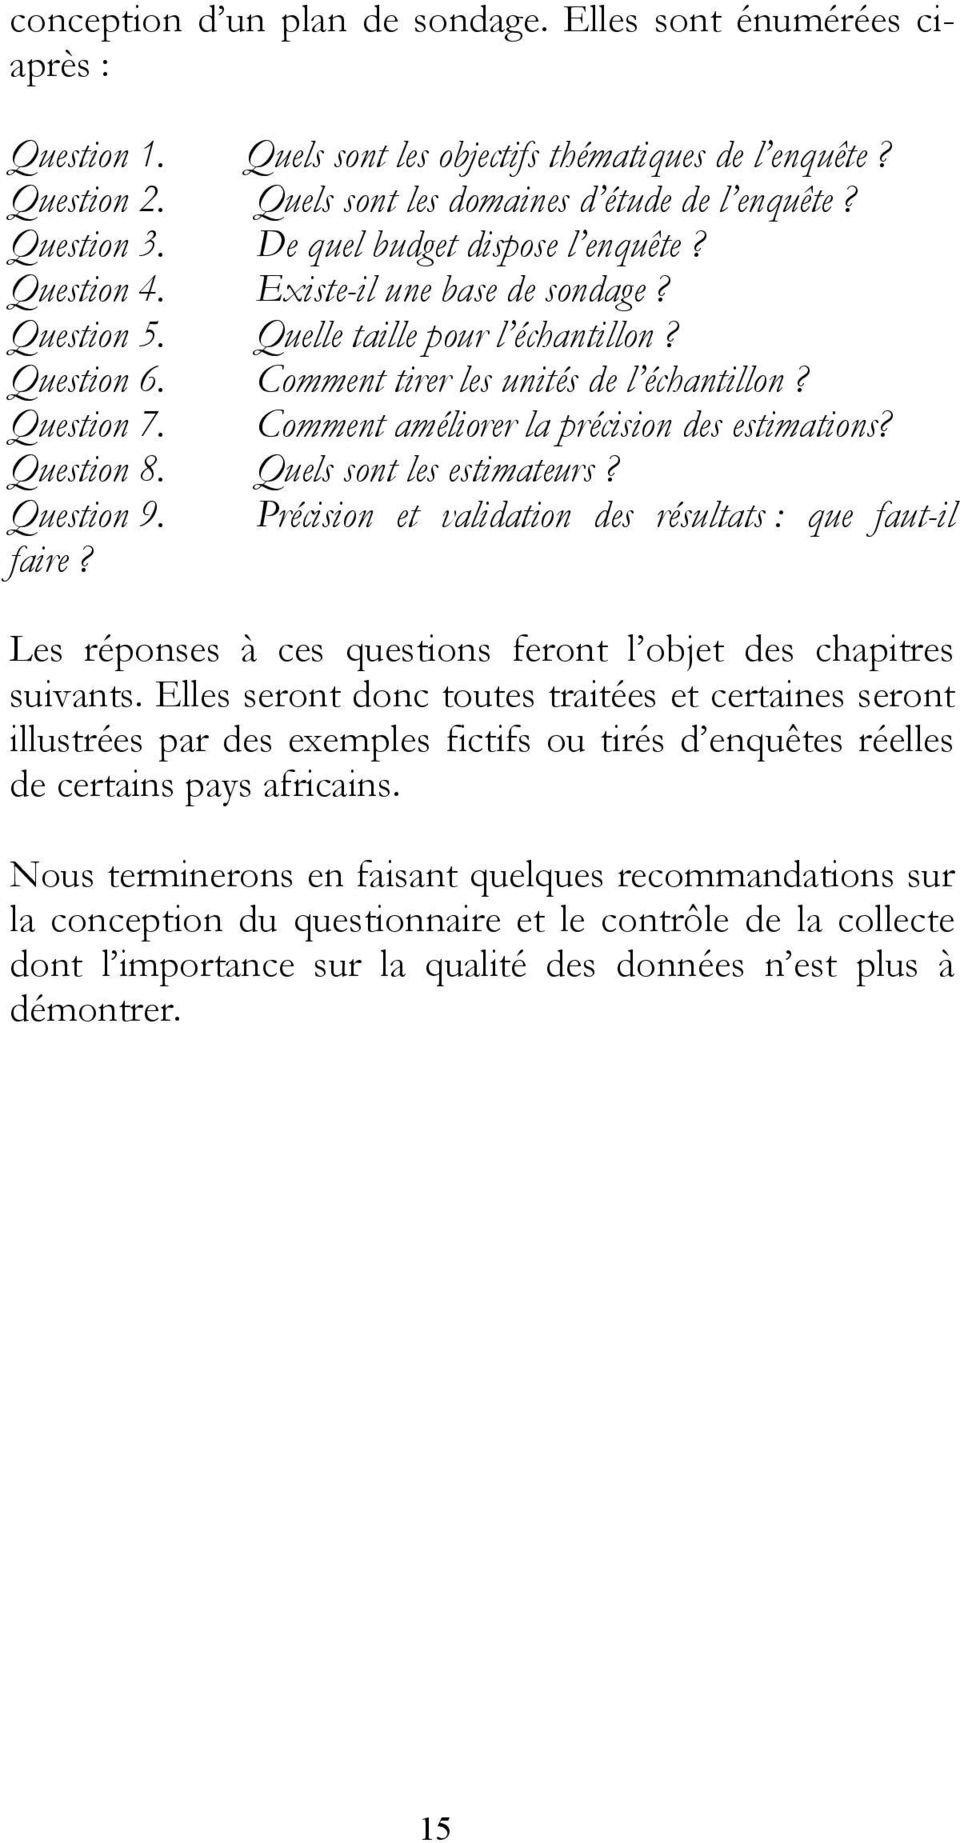 Comment améliorer la précision des estimations? Question 8. Quels sont les estimateurs? Question 9. Précision et validation des résultats : que faut-il faire?